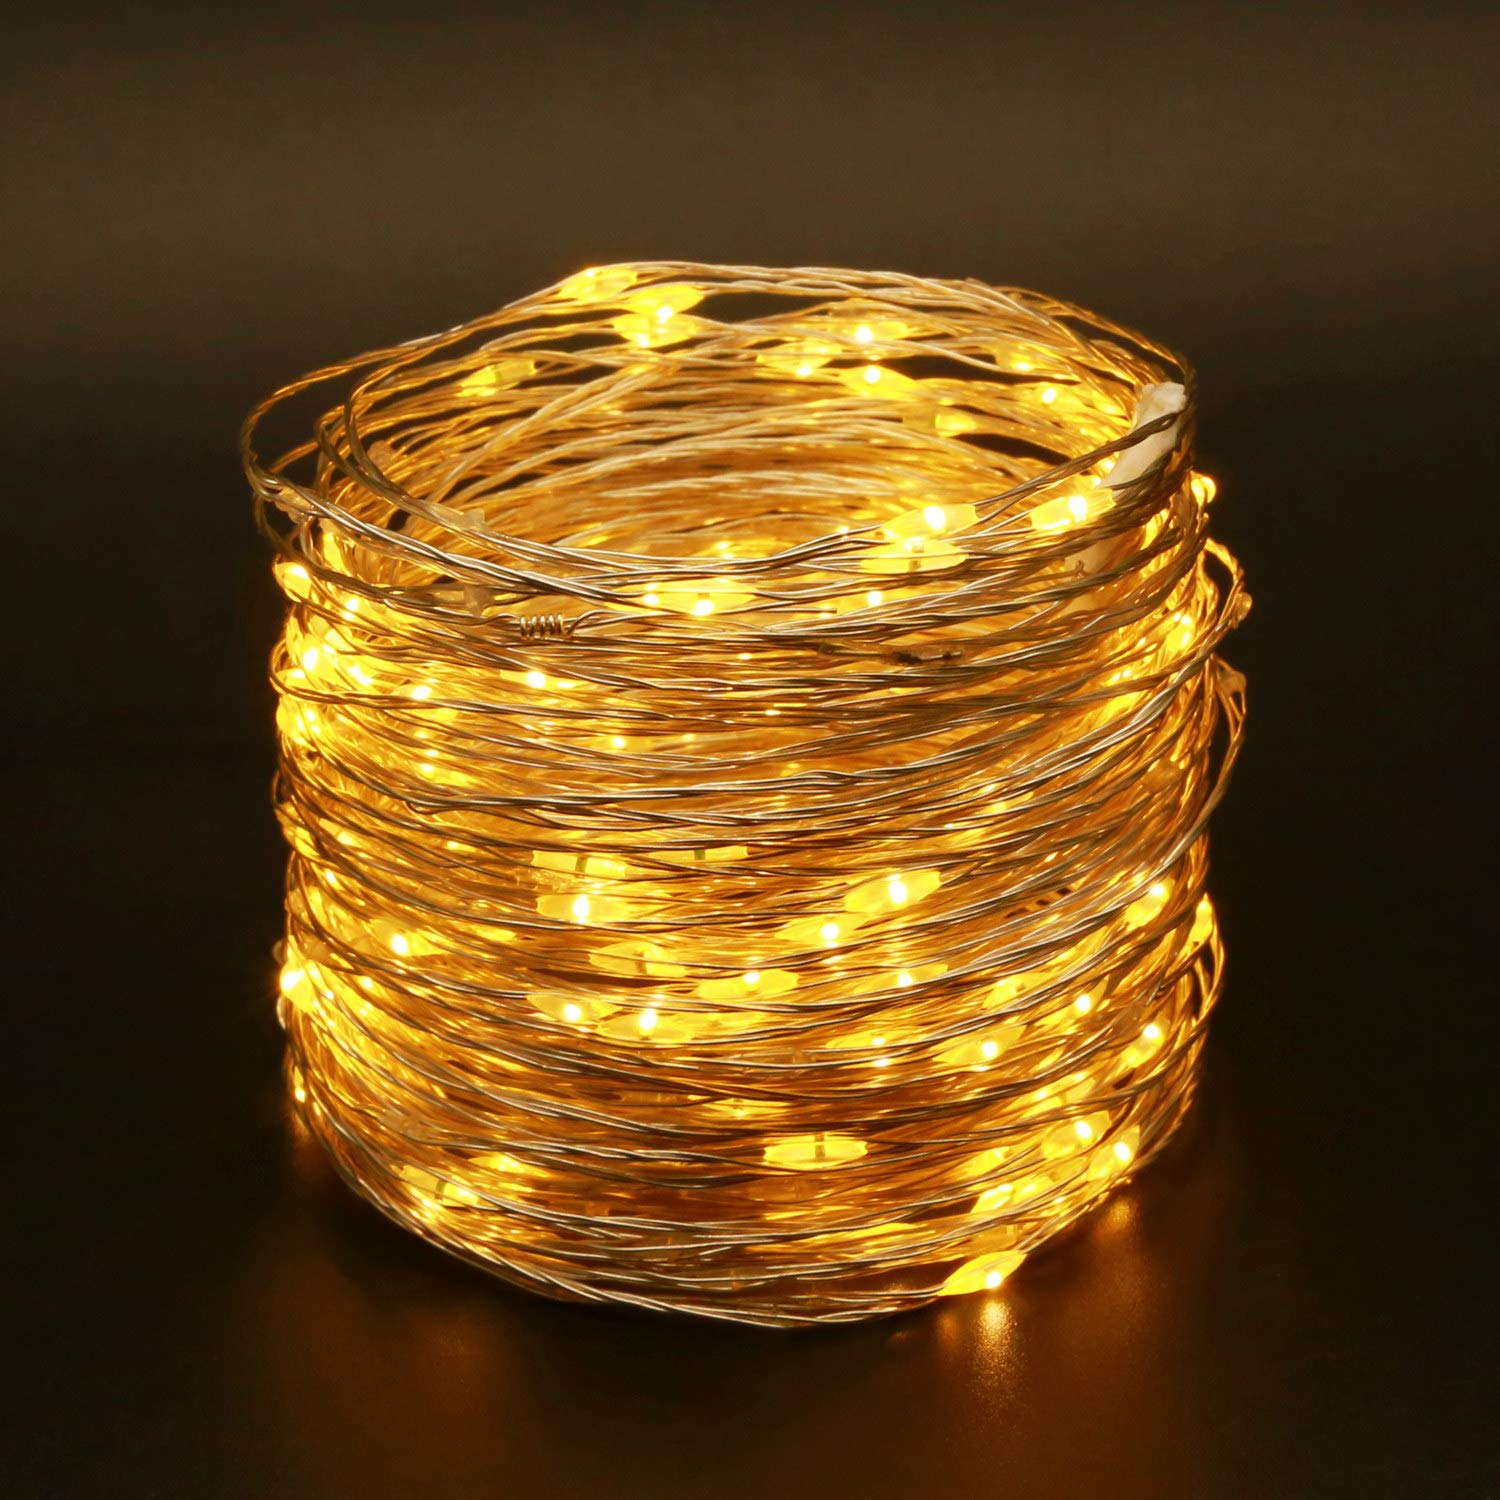 YULETIME Fairy String Lights with Adapter, 50 Ft 150 LEDs Waterproof Starry Copper Wire Lights, Home Decor Firefly Lights for Garden Backyard Christmas Tree (Warm White, Silvery Wire)